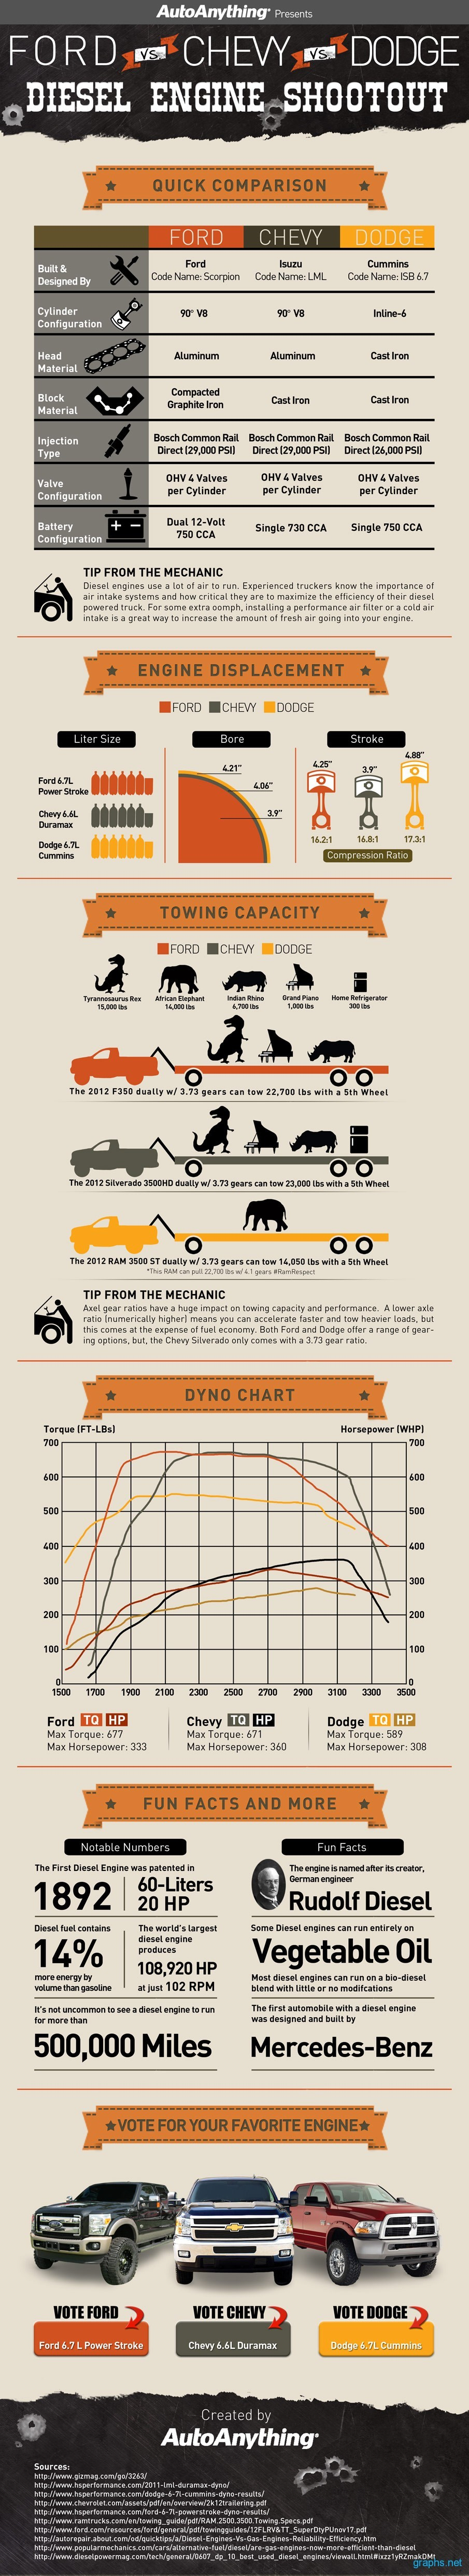 Ford, Chevy and Dodge Diesel Engine Comparison